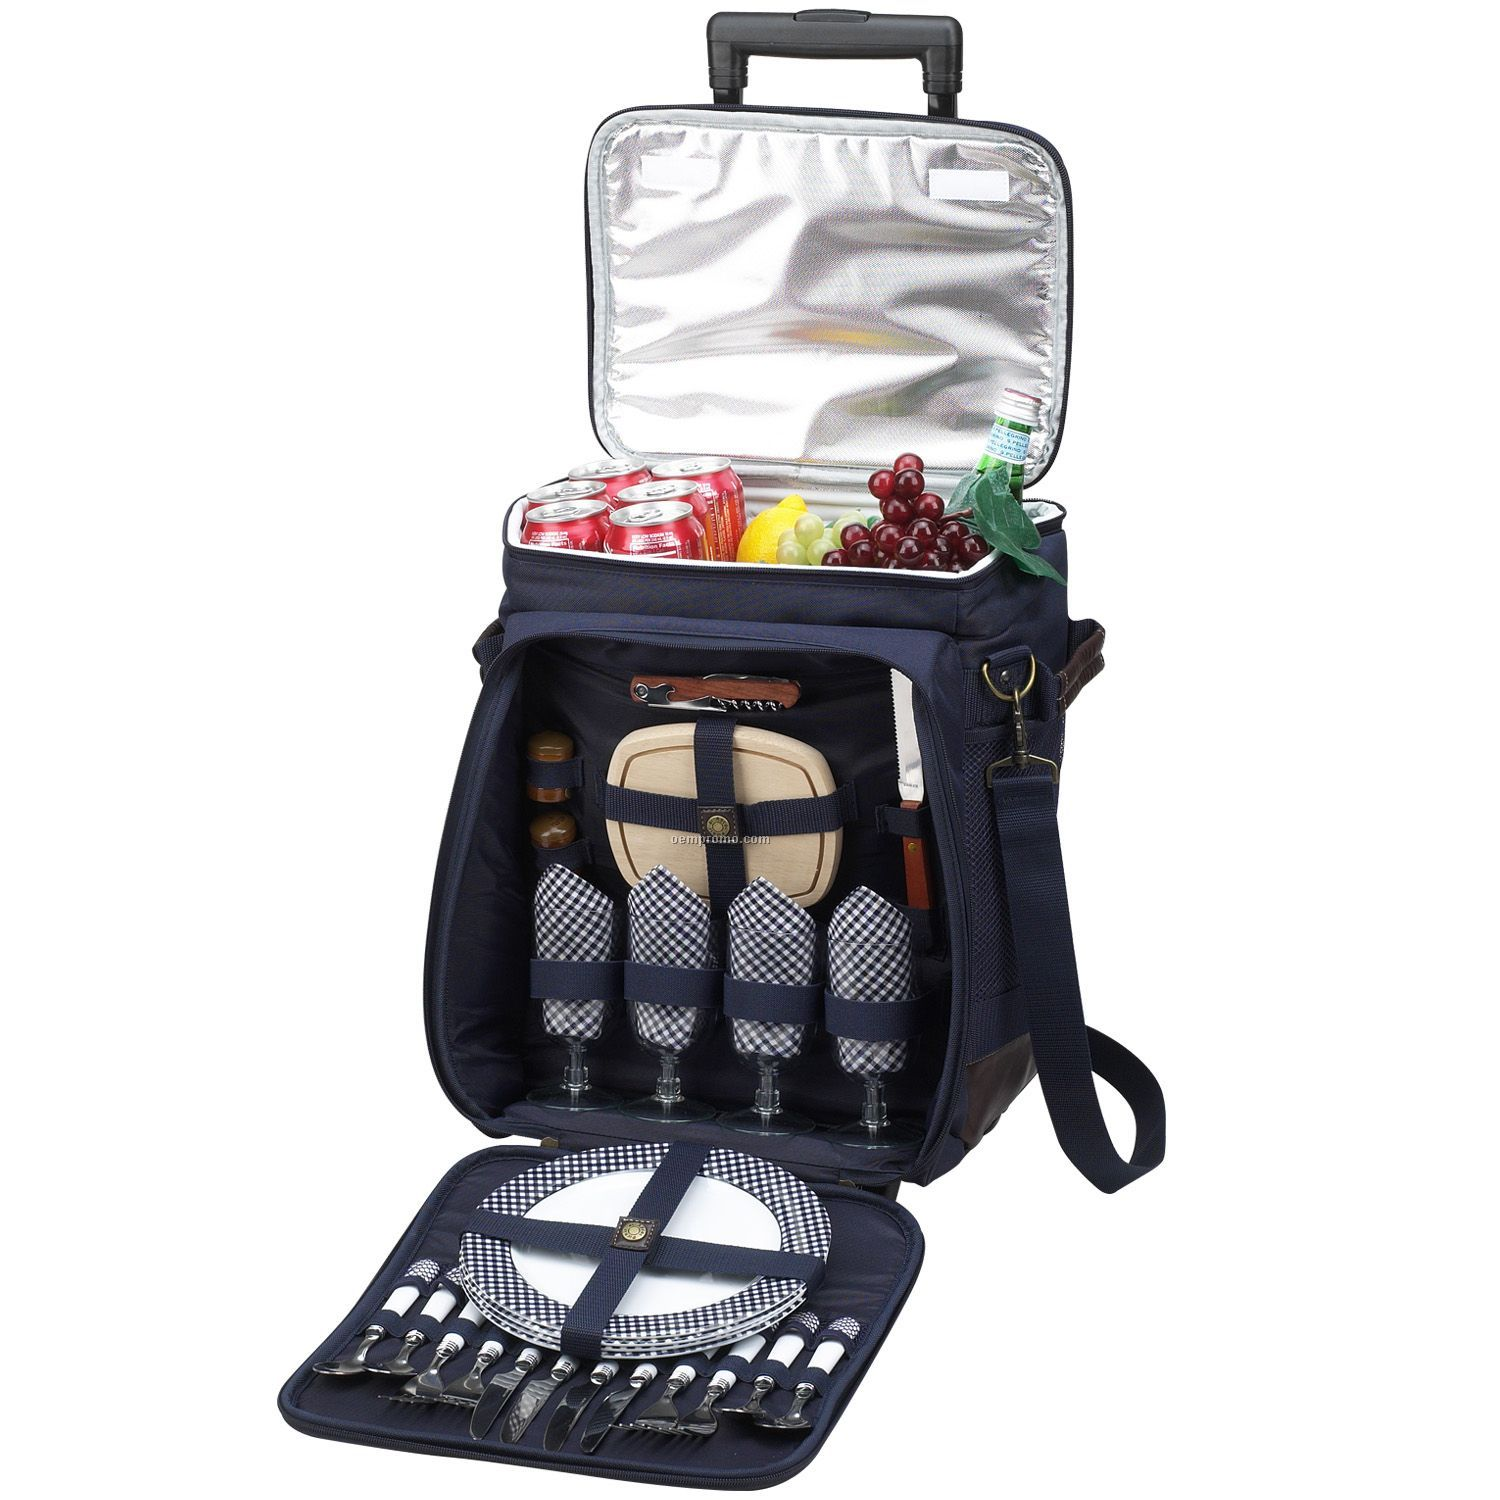 Collapsible Insulated Picnic Basket For 4 : Collapsible picnic cooler on wheels for four china